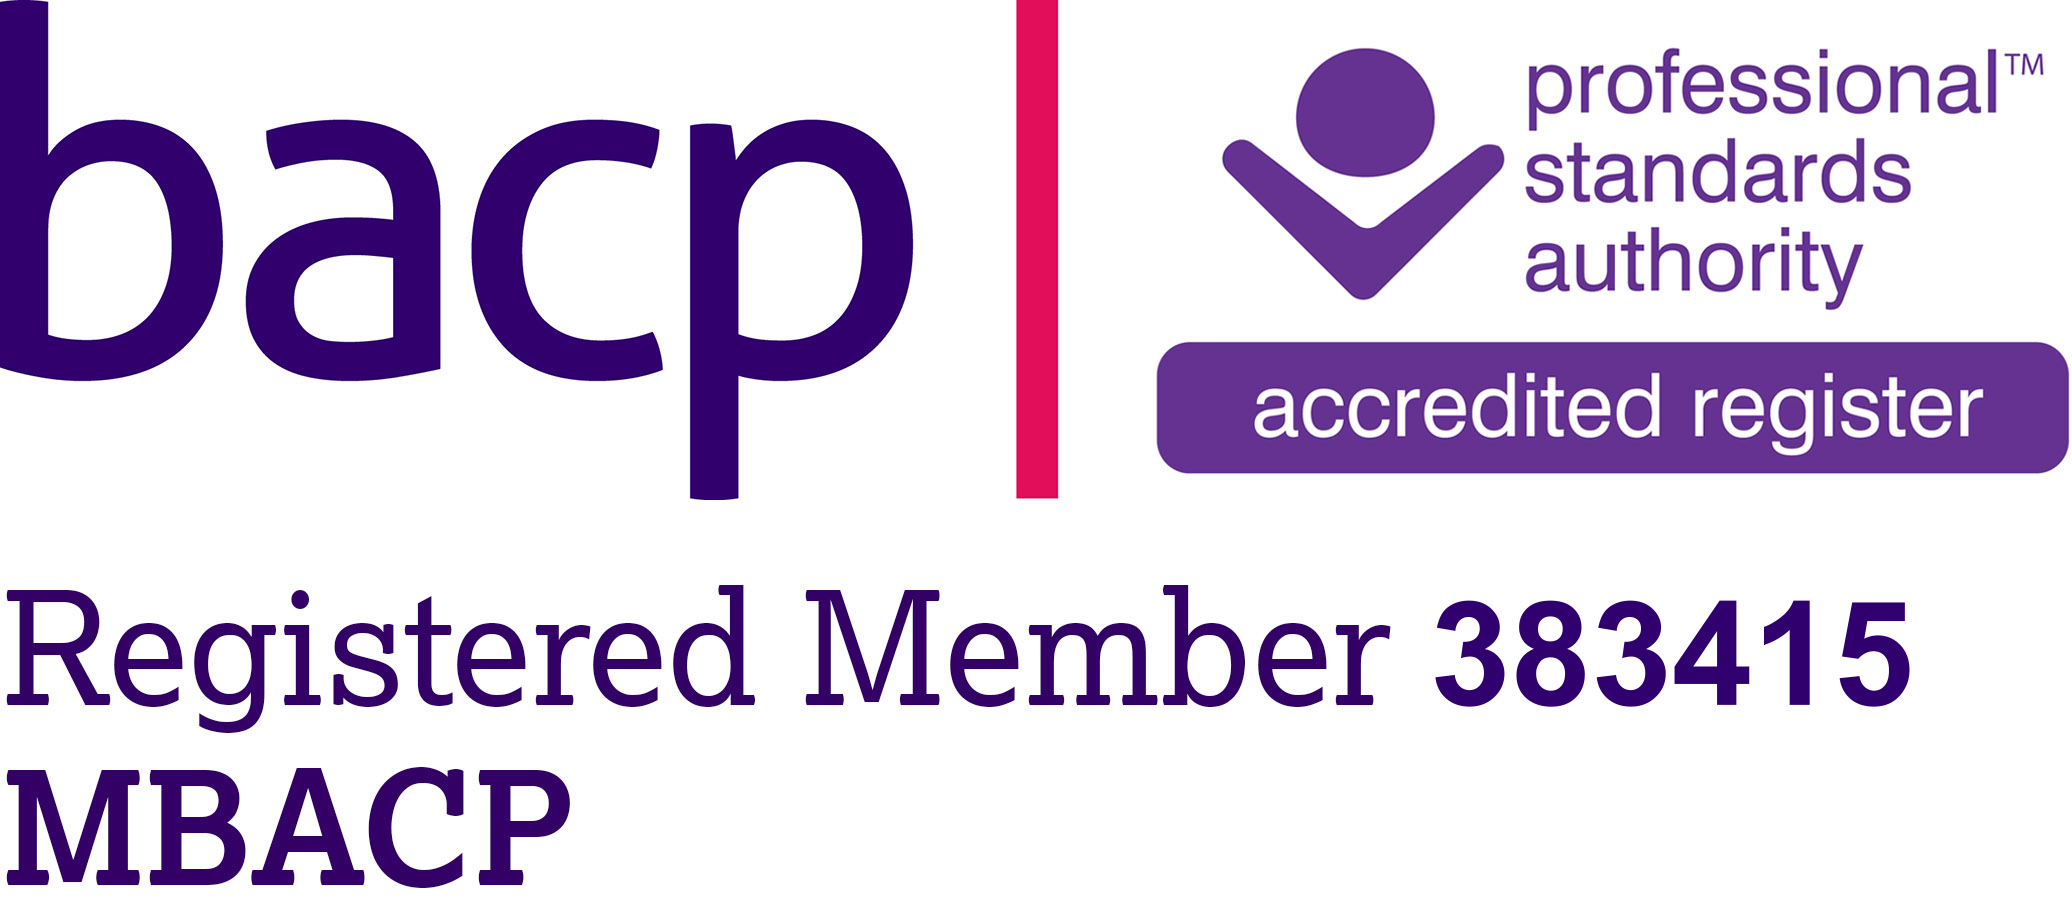 The official logo of the BACP. Jo Dell is accredited and a registered member.